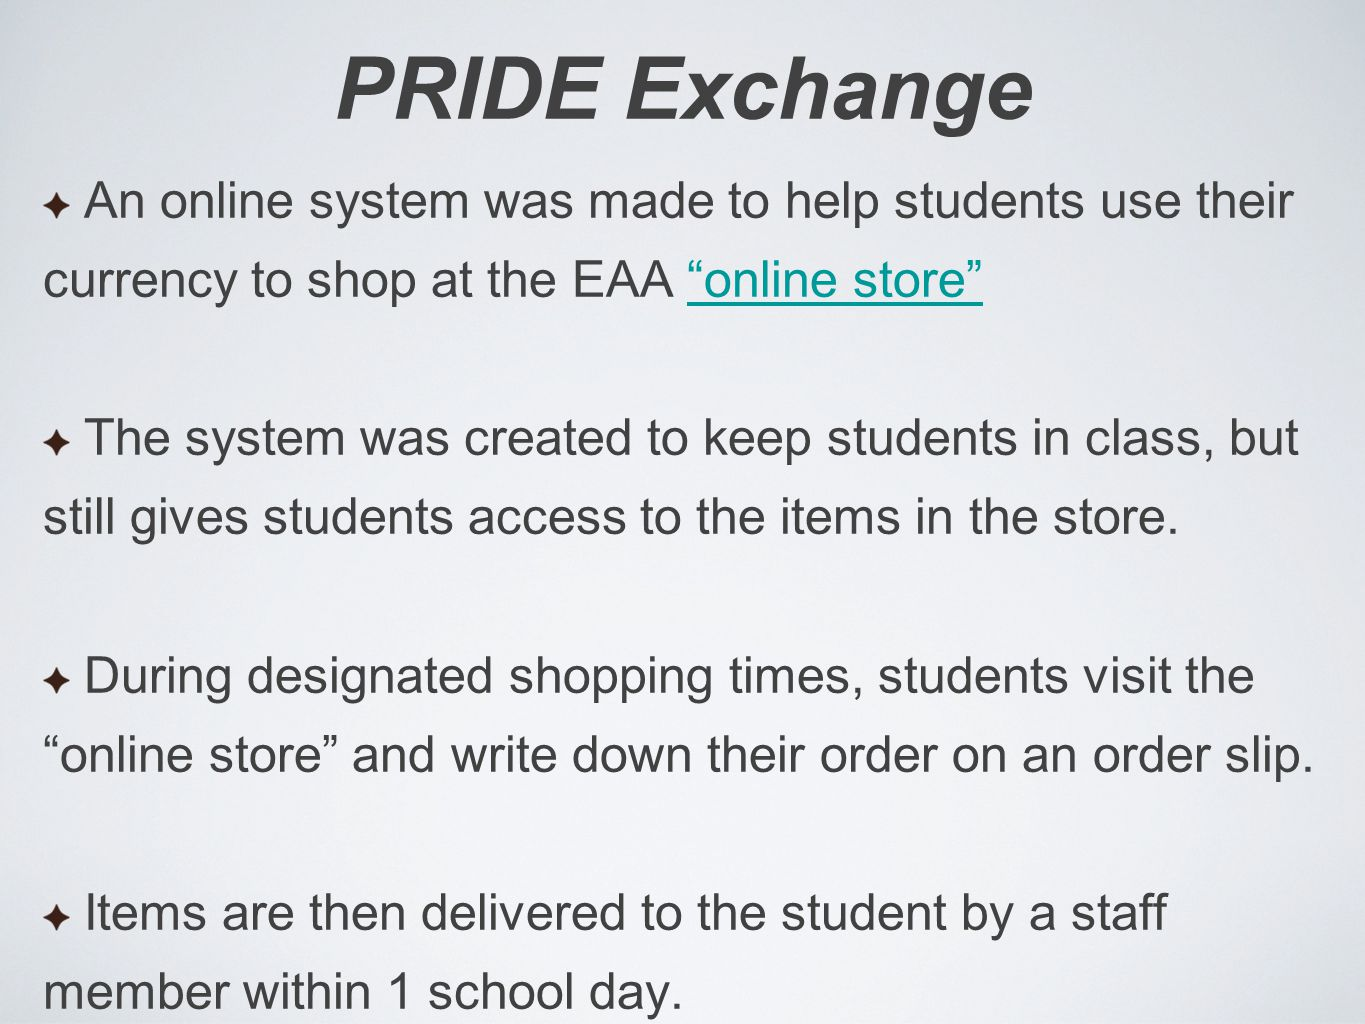 PRIDE Exchange An online system was made to help students use their currency to shop at the EAA online storeonline store The system was created to kee